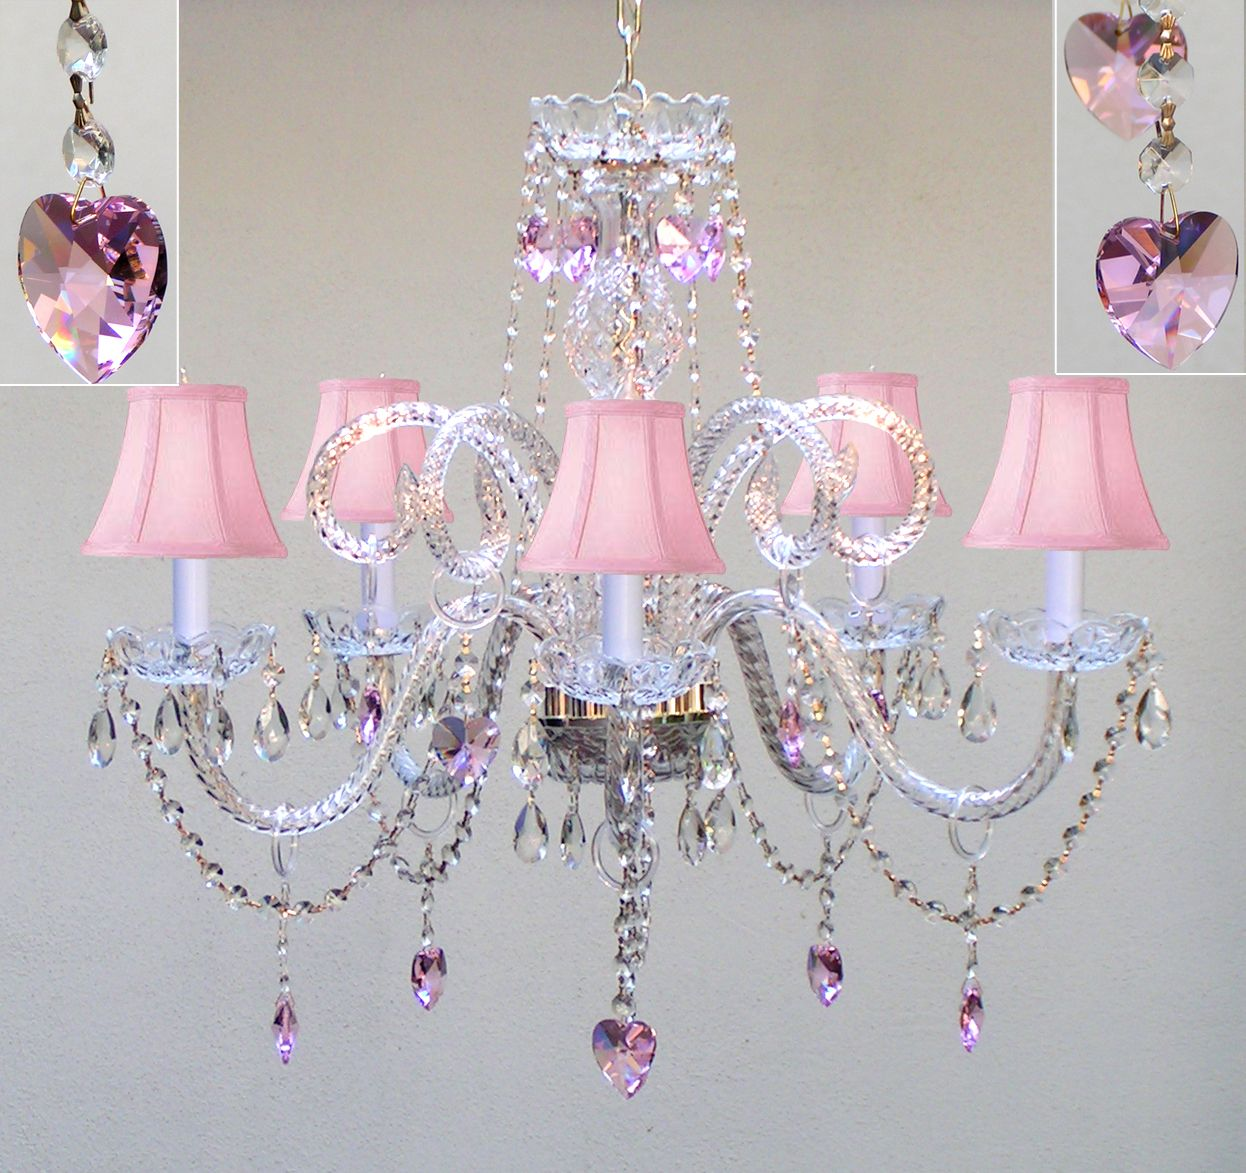 For a little girls room a46 sc3875pinkhearts chandeliers for a little girls room a46 sc3875pinkhearts chandeliers chandelier mozeypictures Images